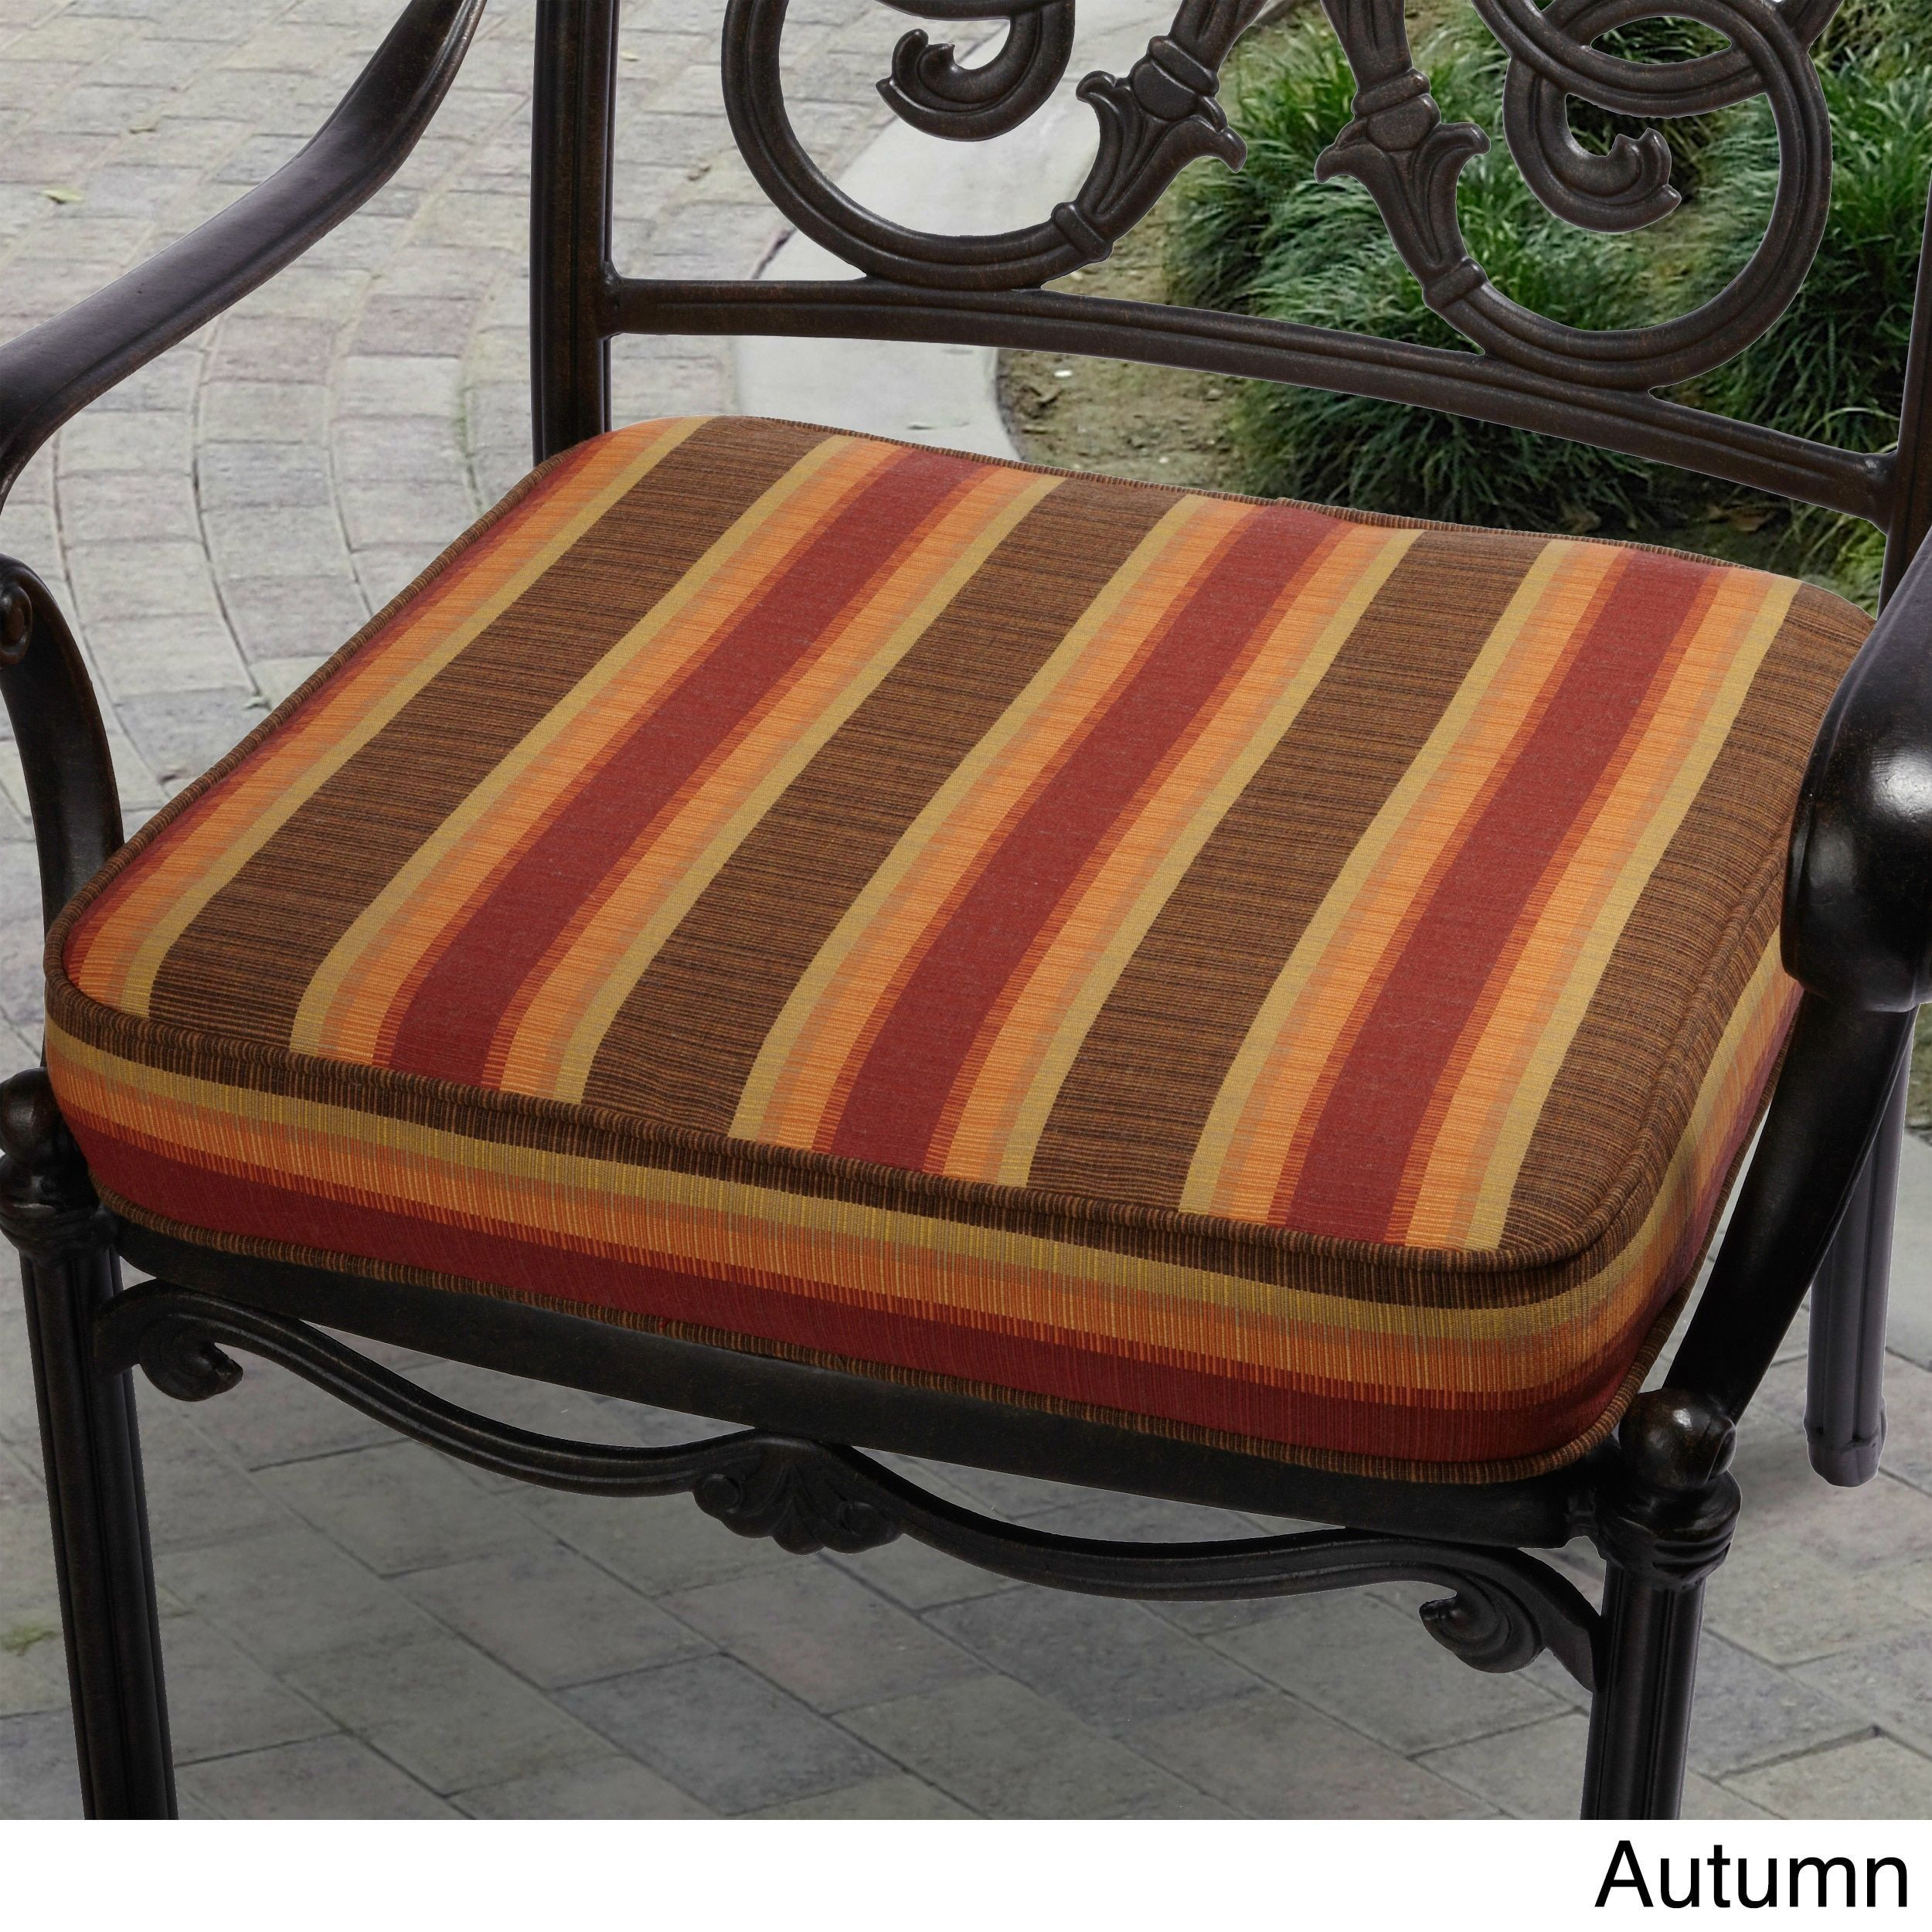 Indoor Outdoor 19 inch Striped Chair Cushion with Sunbrella